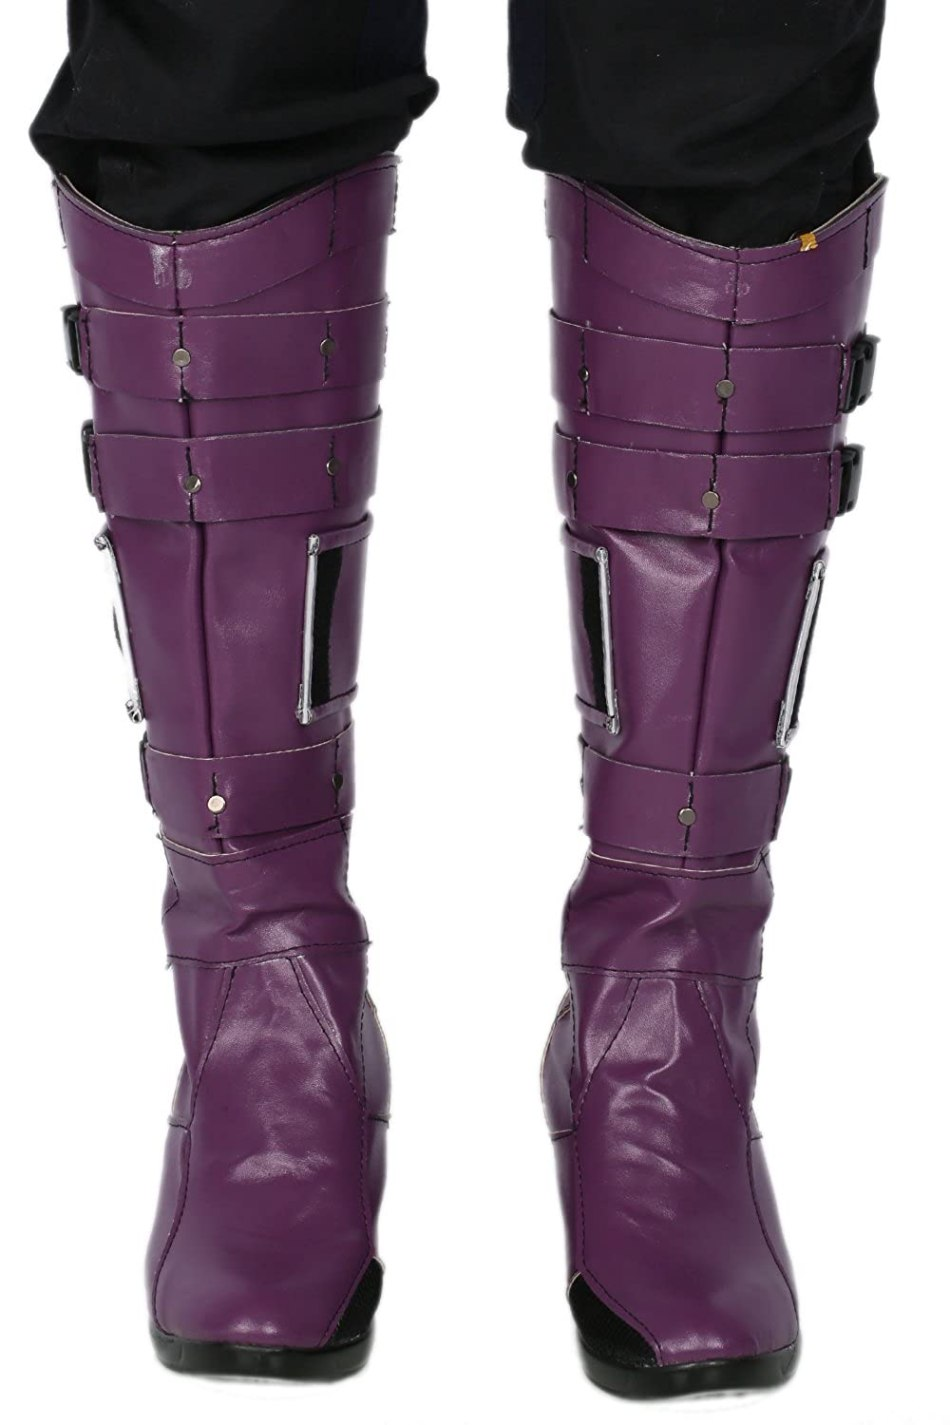 Cosplayrim Nebula Boots Deluxe Purple PU Knee-high Boots Cosplay Shoes